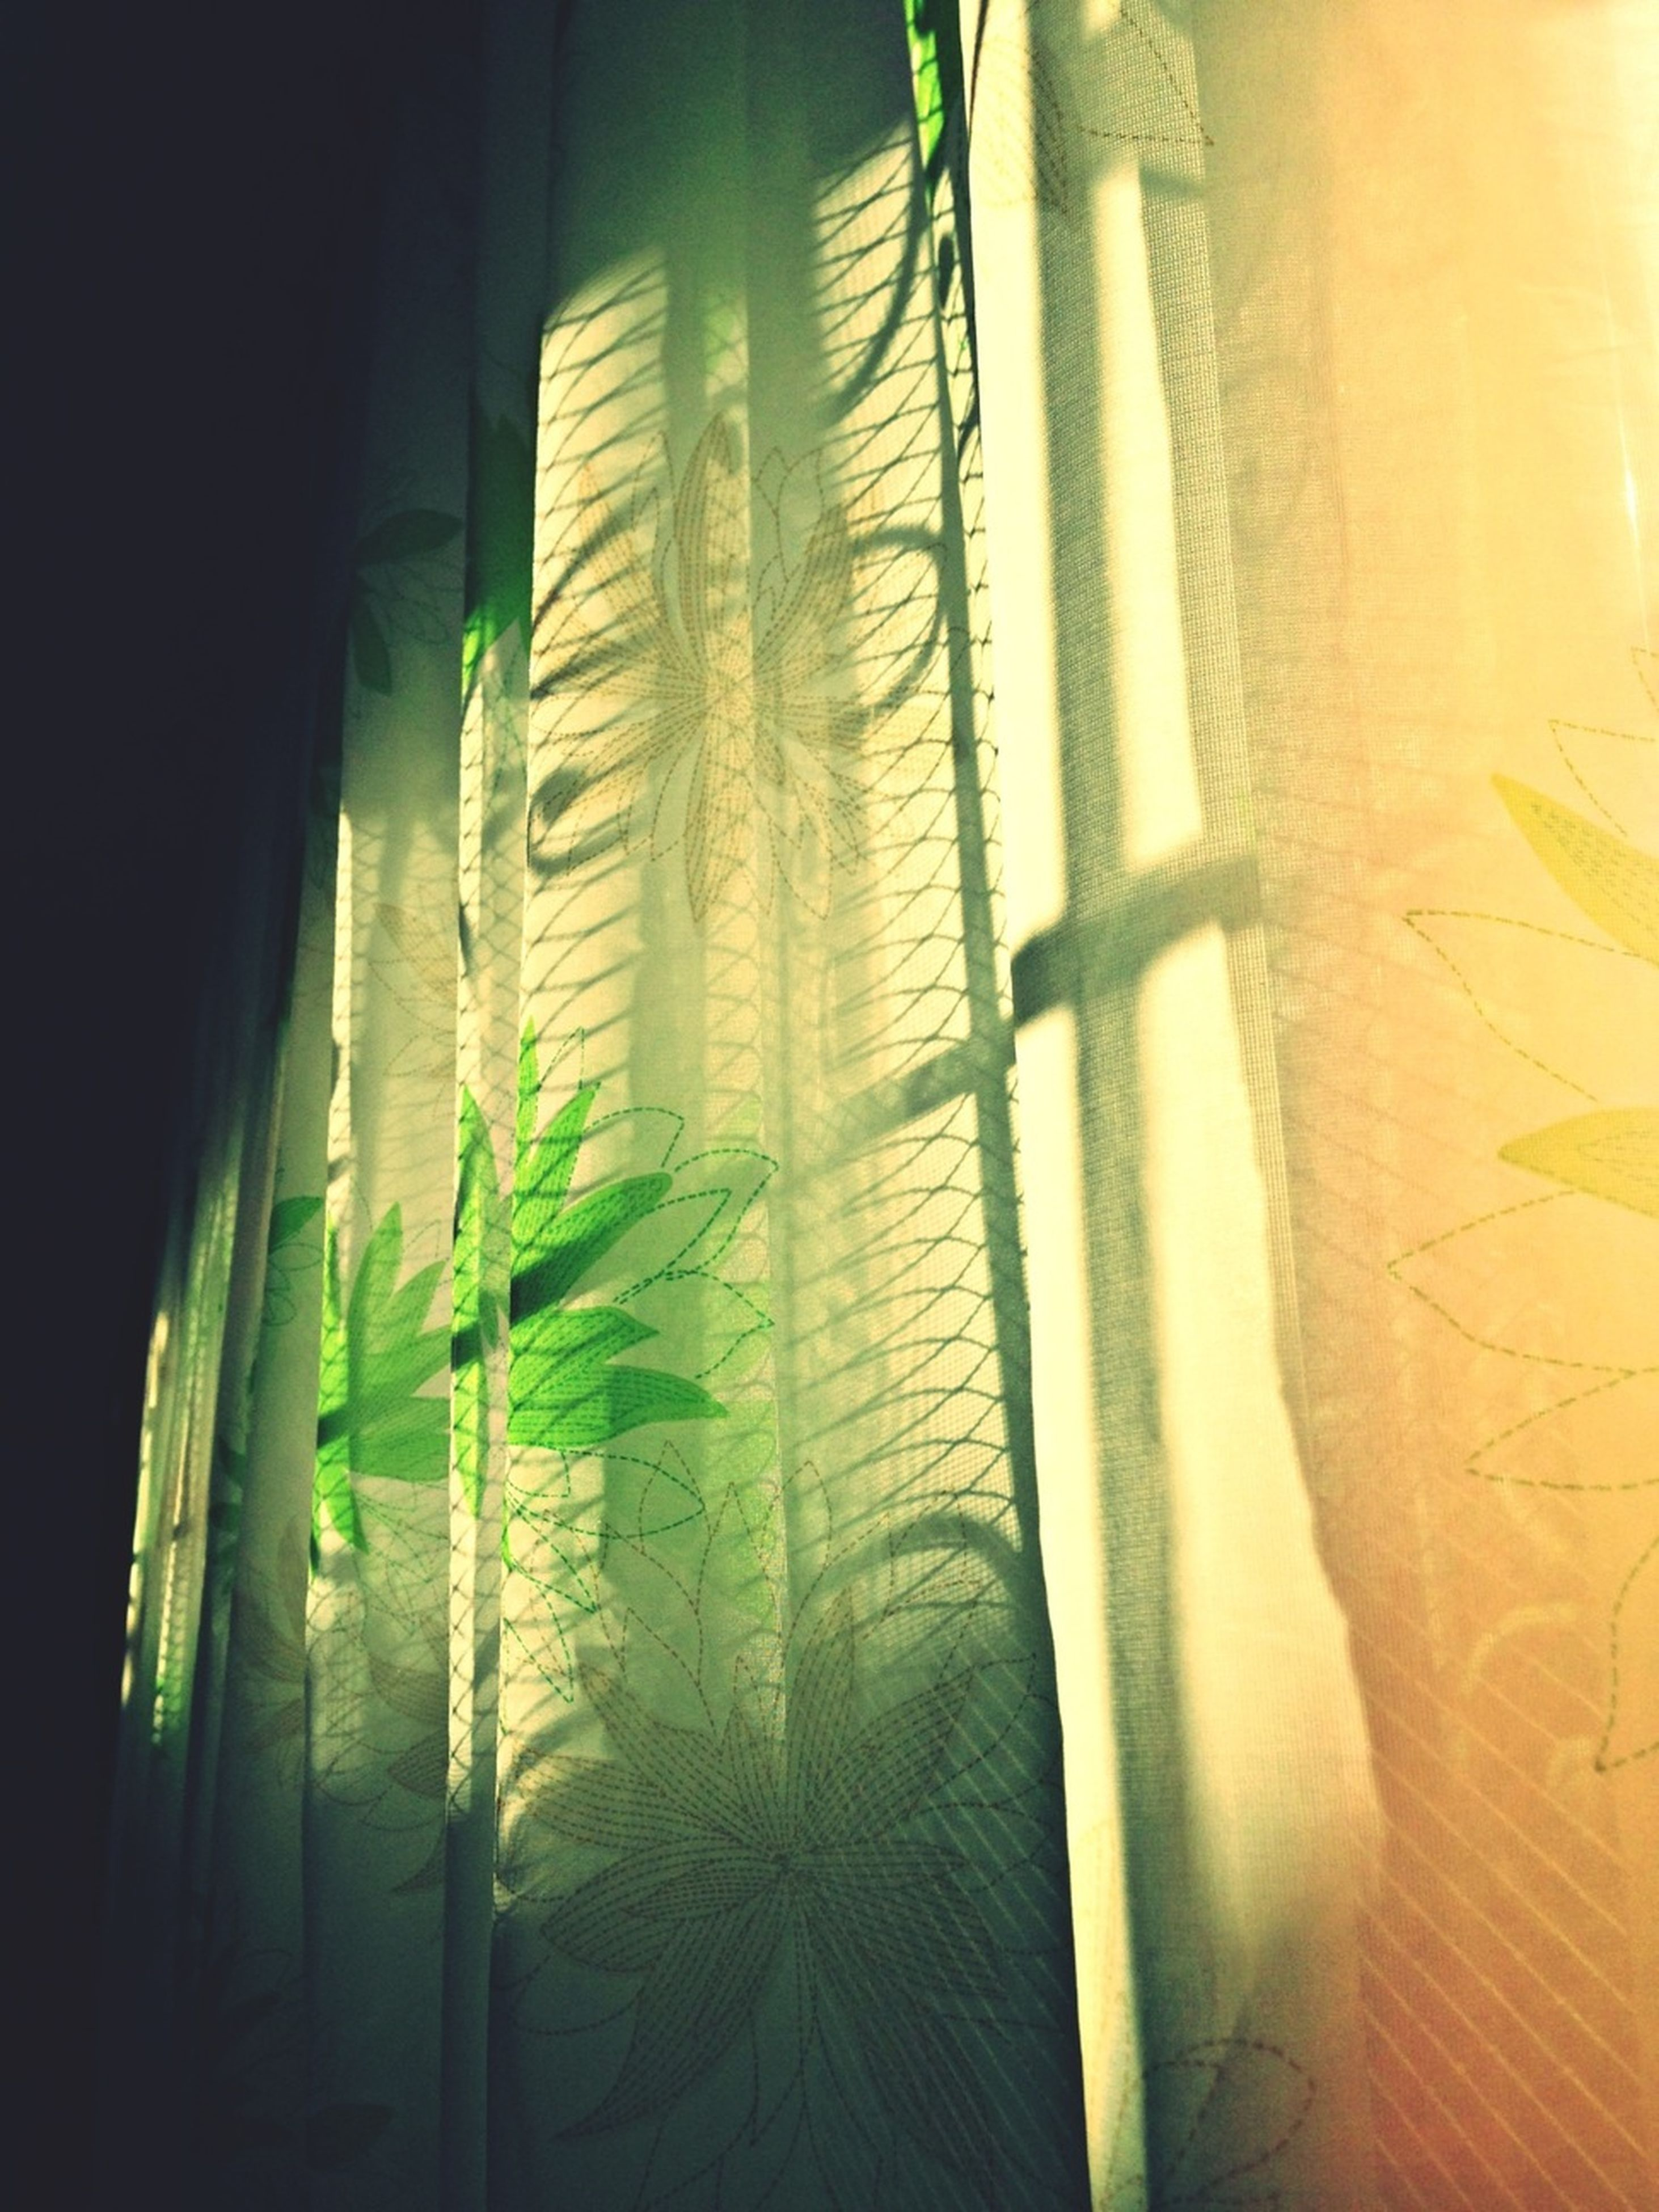 indoors, growth, curtain, window, sunlight, wall - building feature, shadow, plant, day, no people, close-up, green color, built structure, nature, home interior, wall, architecture, pattern, low angle view, glass - material